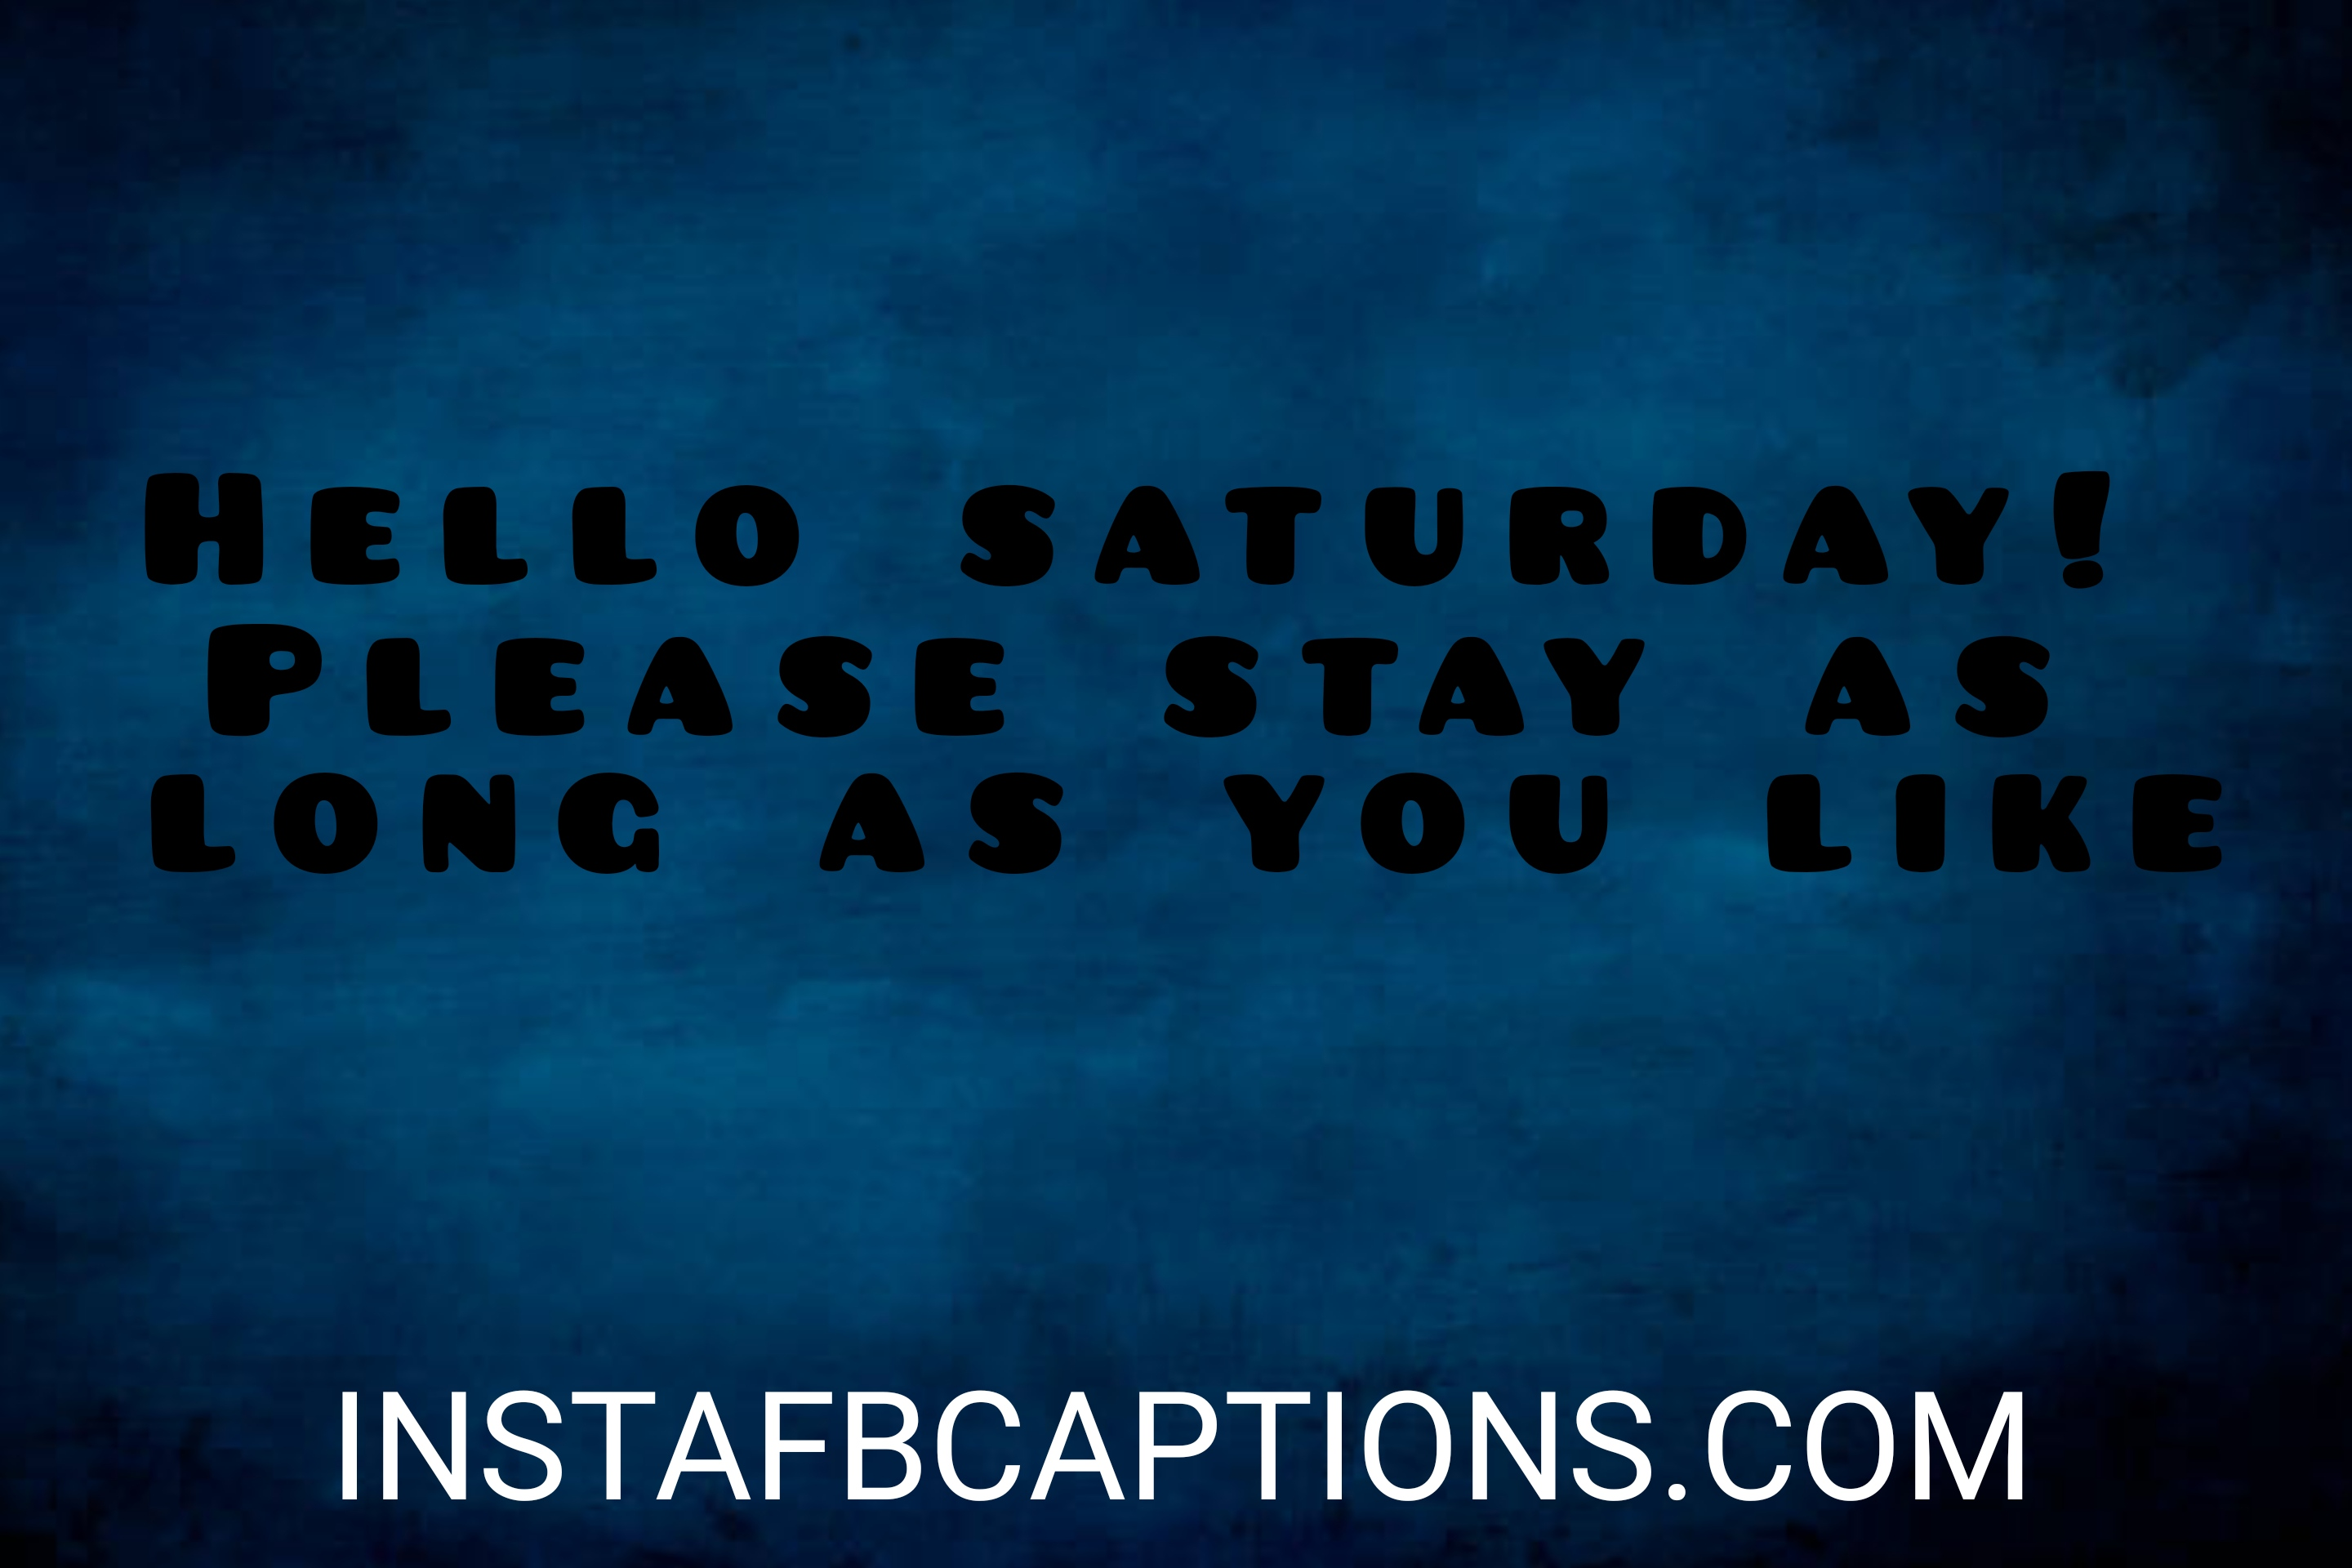 Hello Saturday Please Stay As Long As You Like  - hello saturday please stay as long as you like - 500+ WEEKEND Instagram Captions 2021